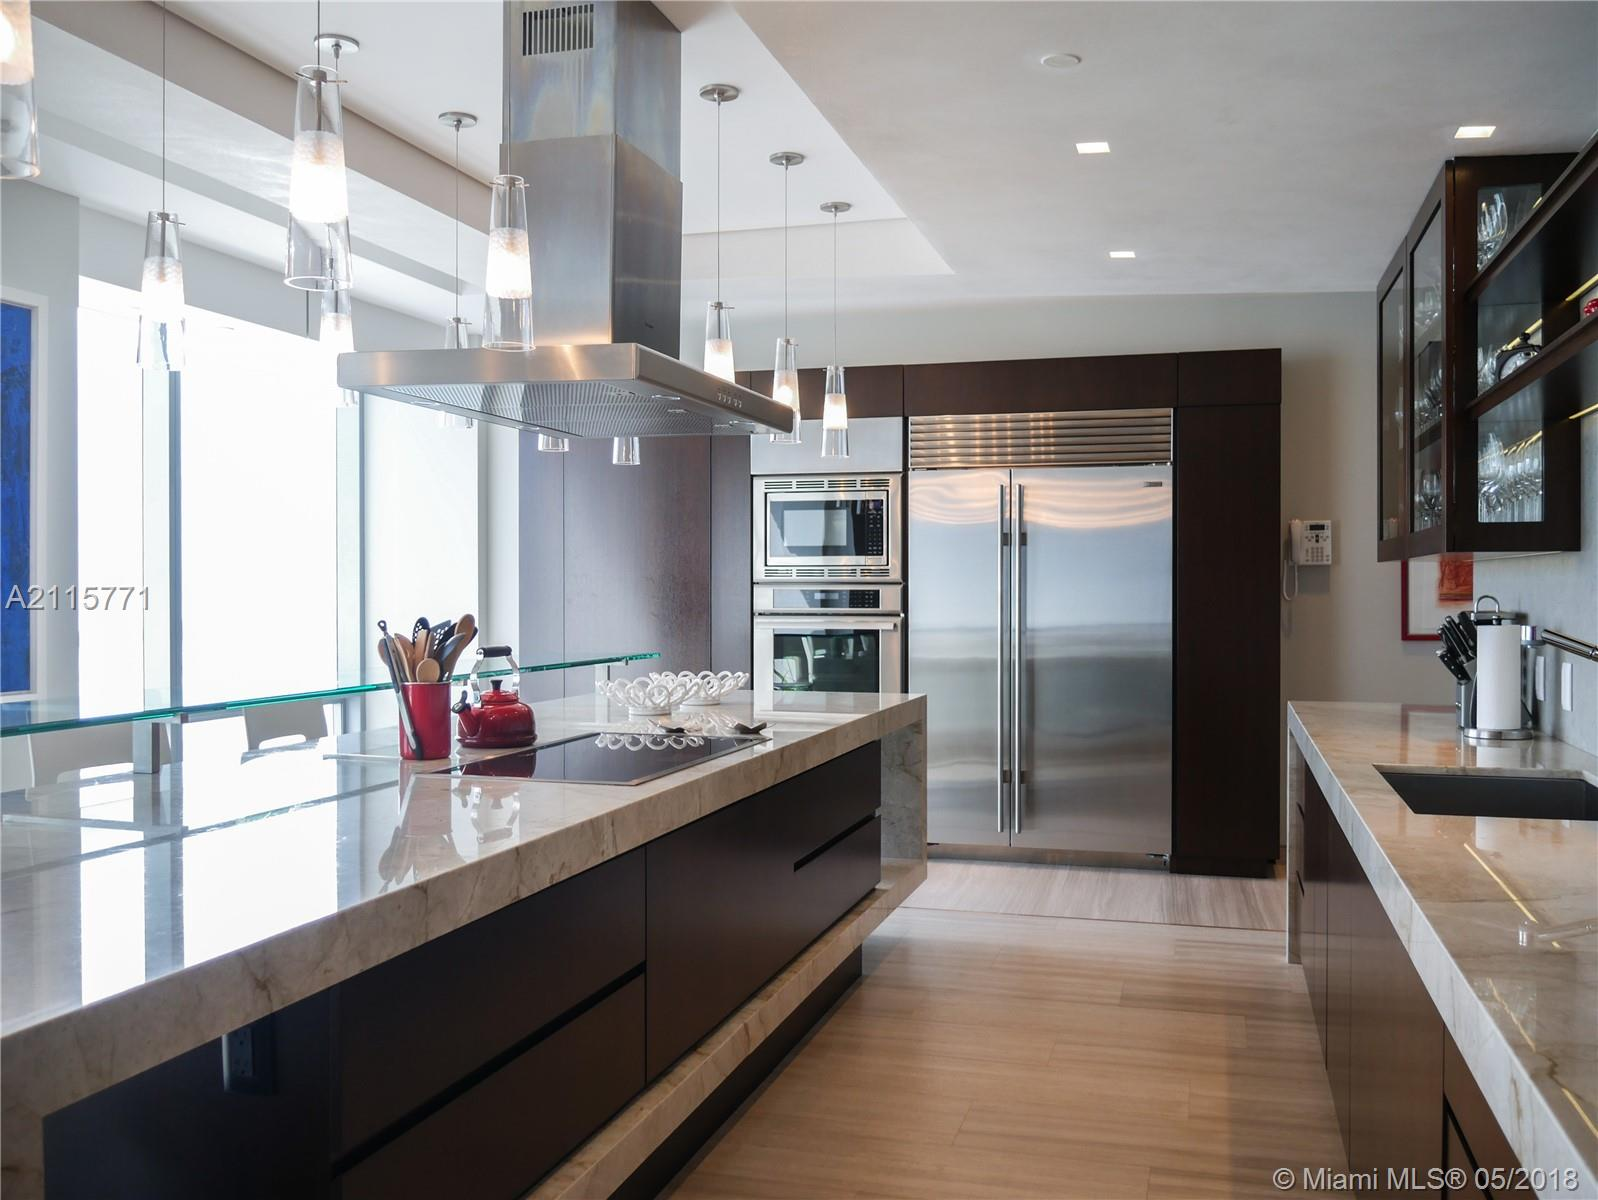 1425 Brickell ave-PH1 miami-fl-33131-a2115771-Pic14